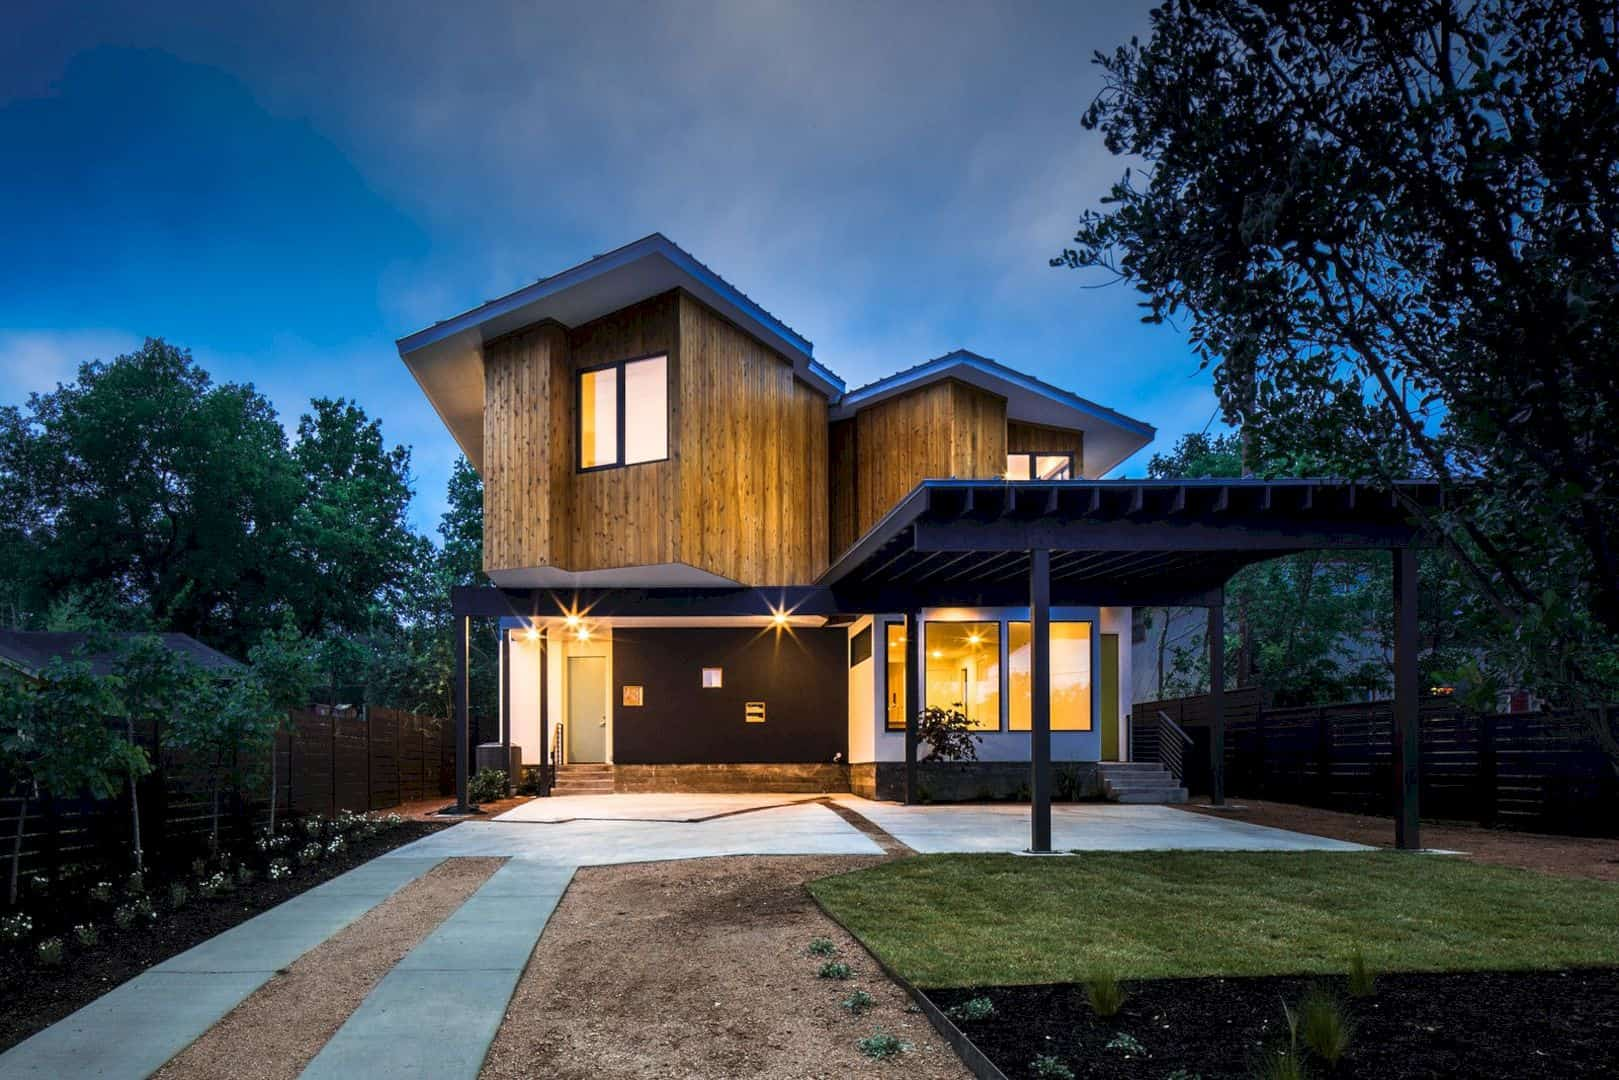 Johanna Du Plx An Urban Infill Project With Duplex Typology In Austin 13